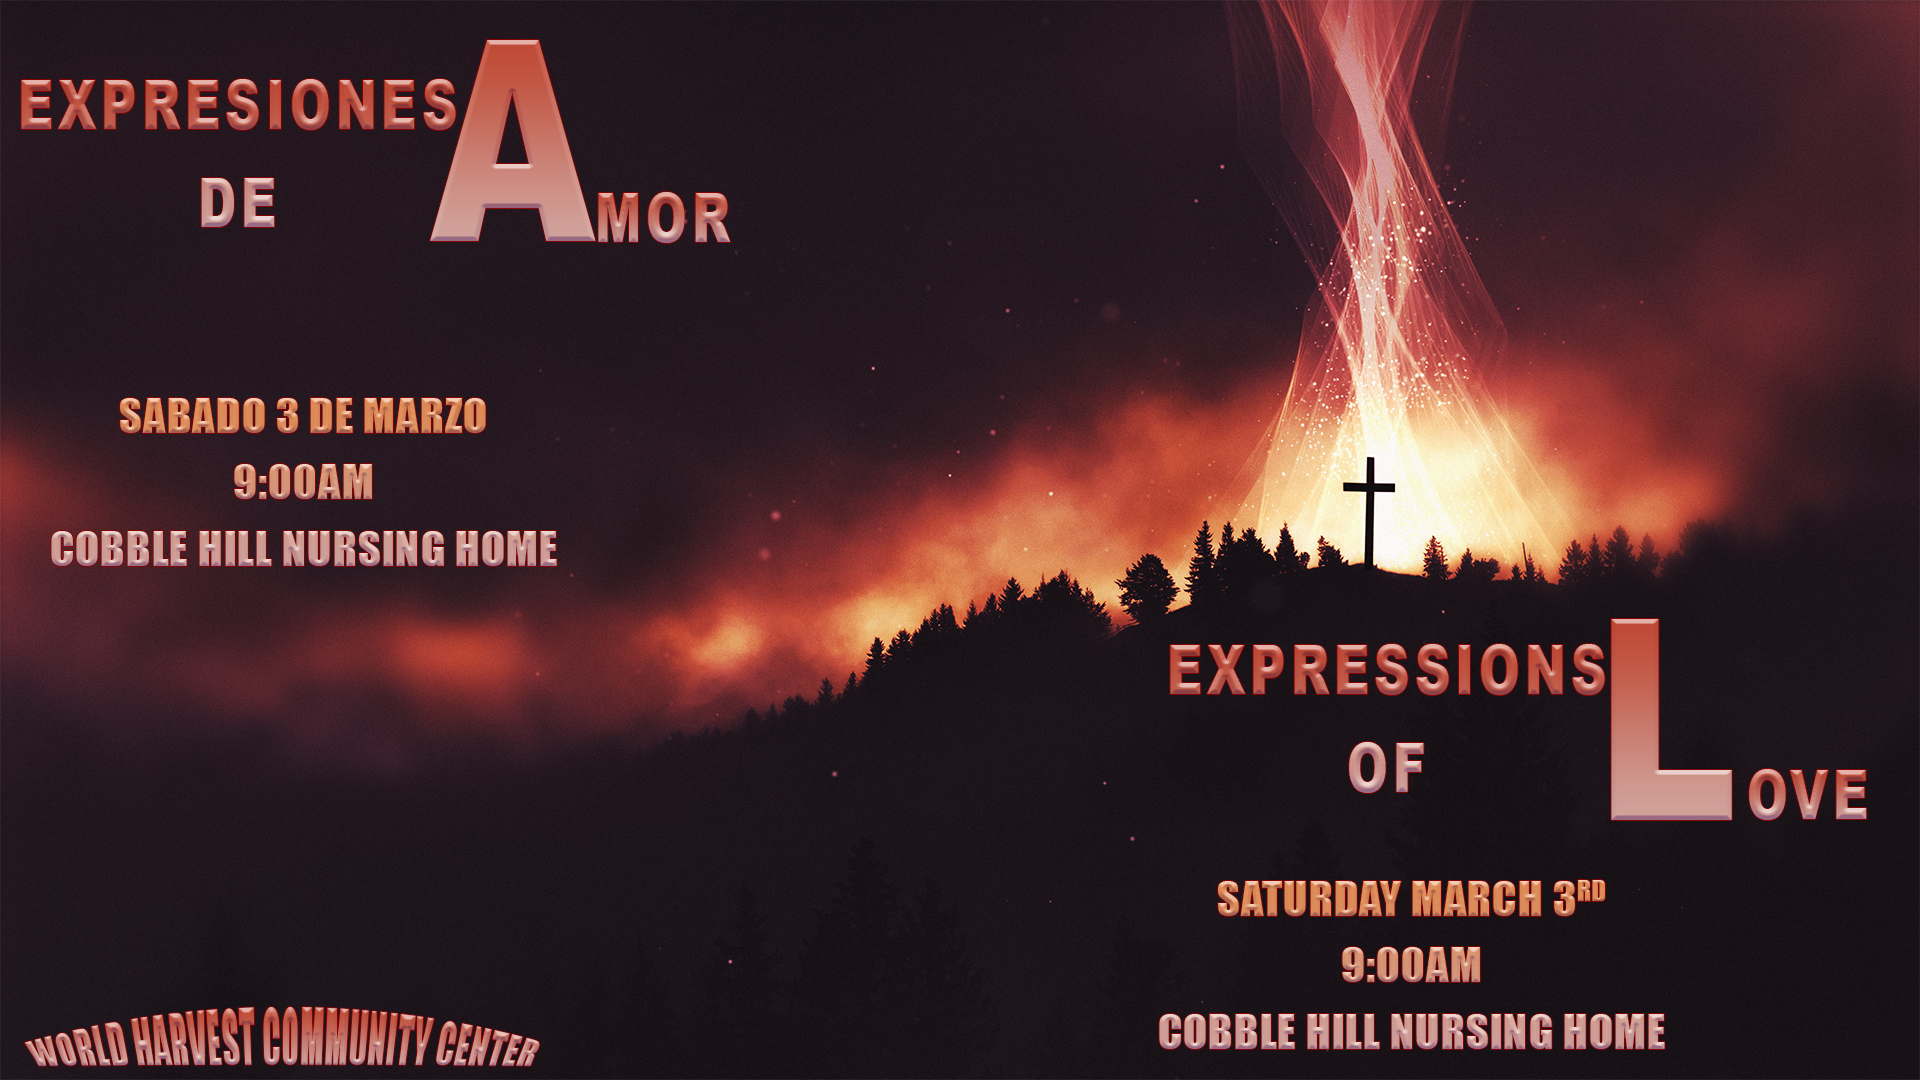 Expressions of Love Saturday March 3rd.